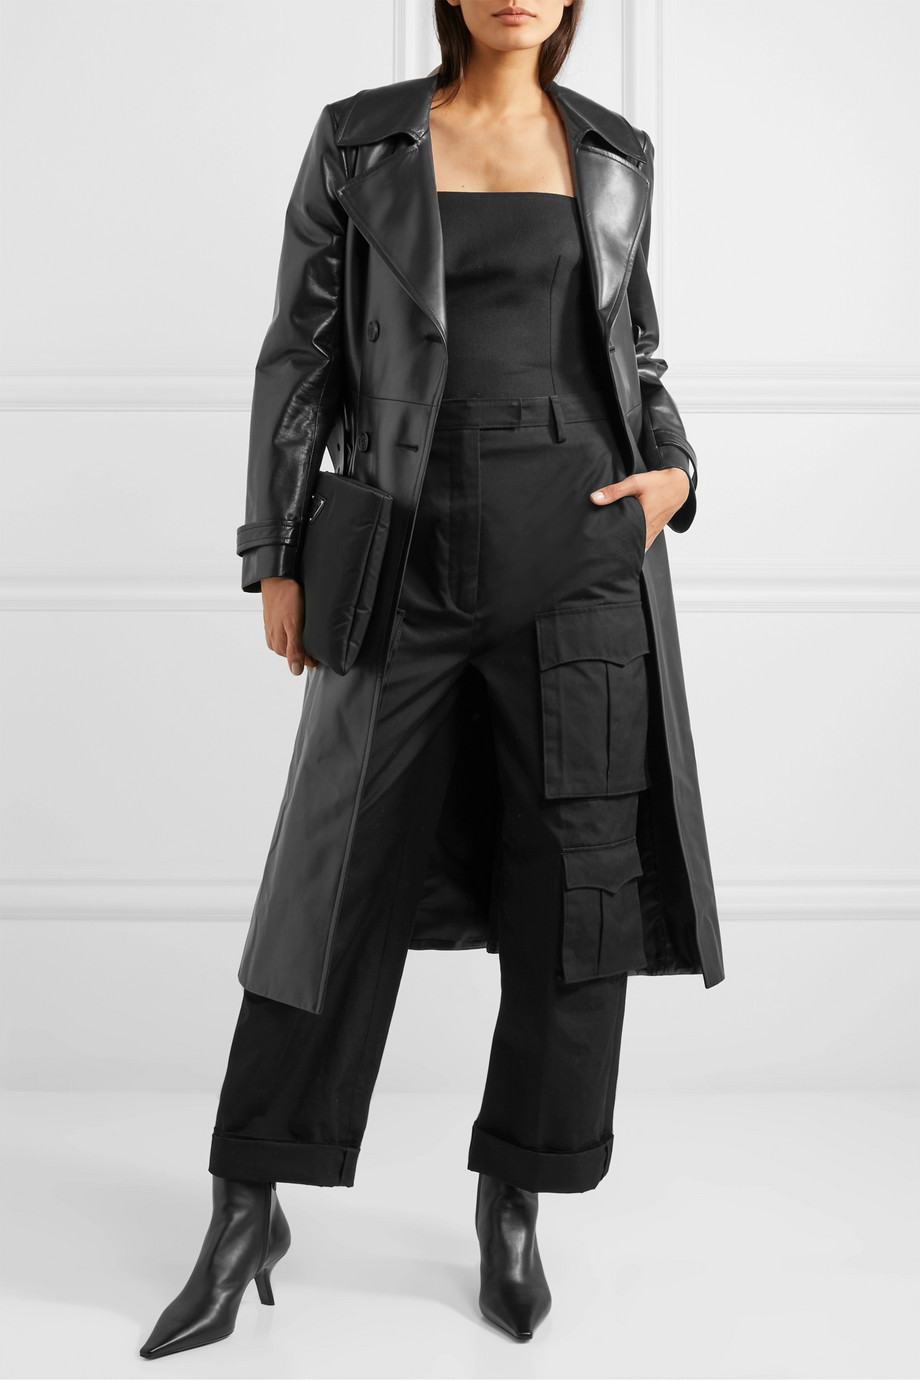 Prada Double-breasted leather trench coat